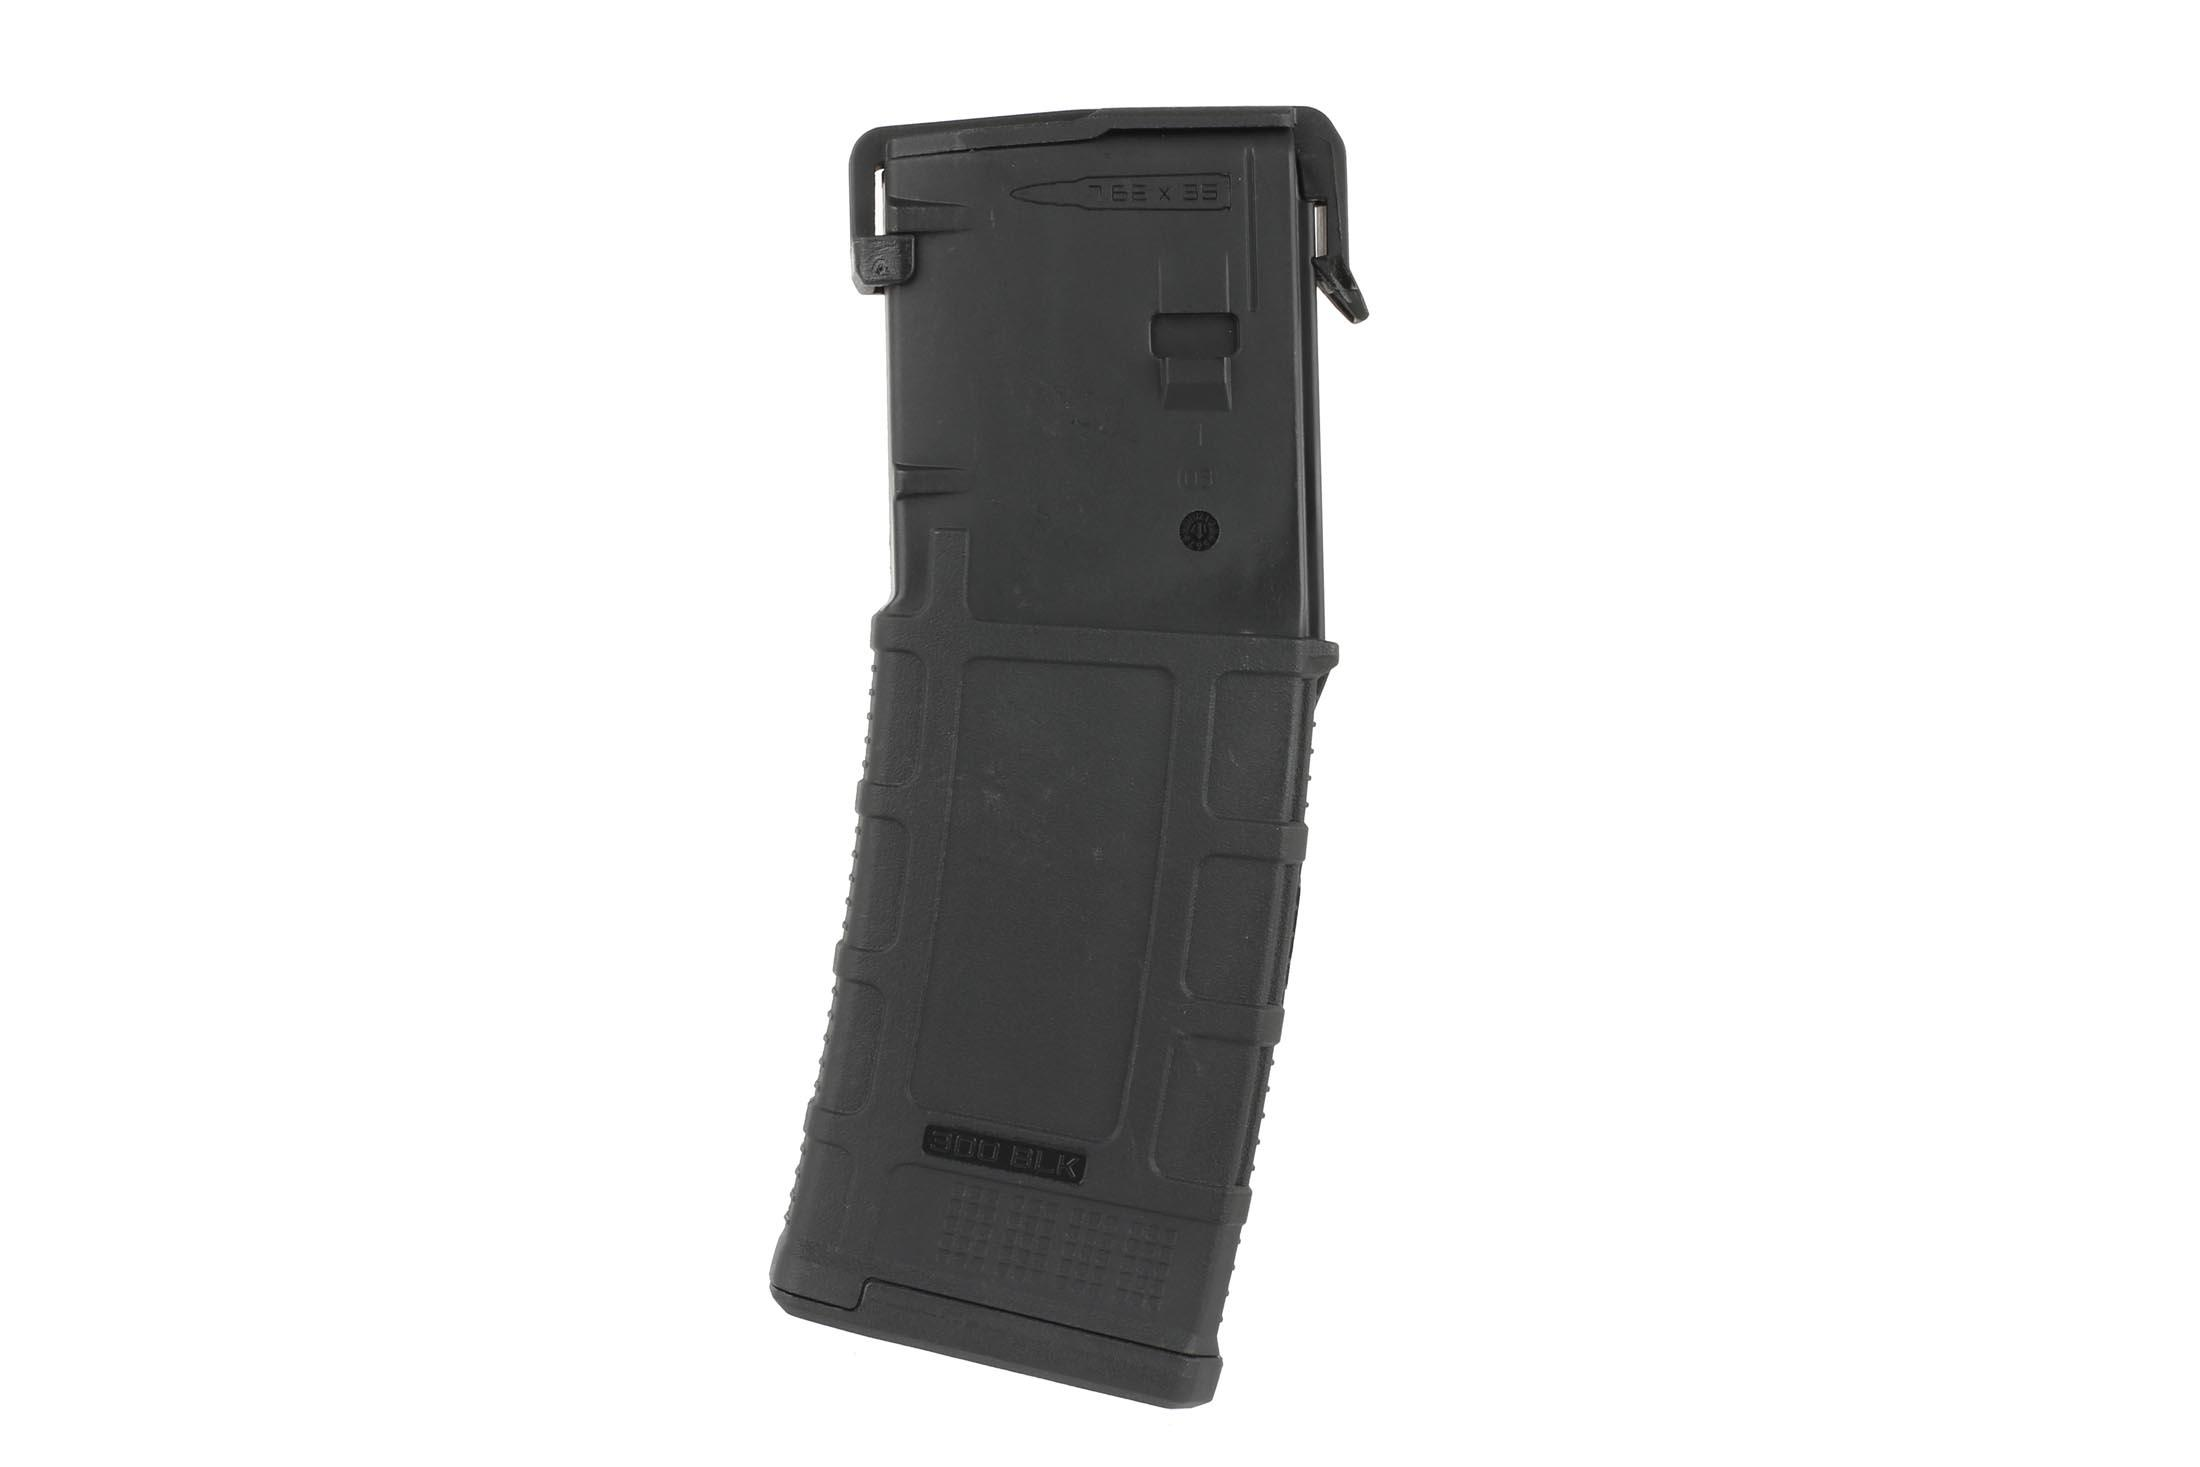 The Magpul PMAG 30 AR300B GEN M3 300 AAC Blackout Magazine has a durable black polymer design to protect it from impacts